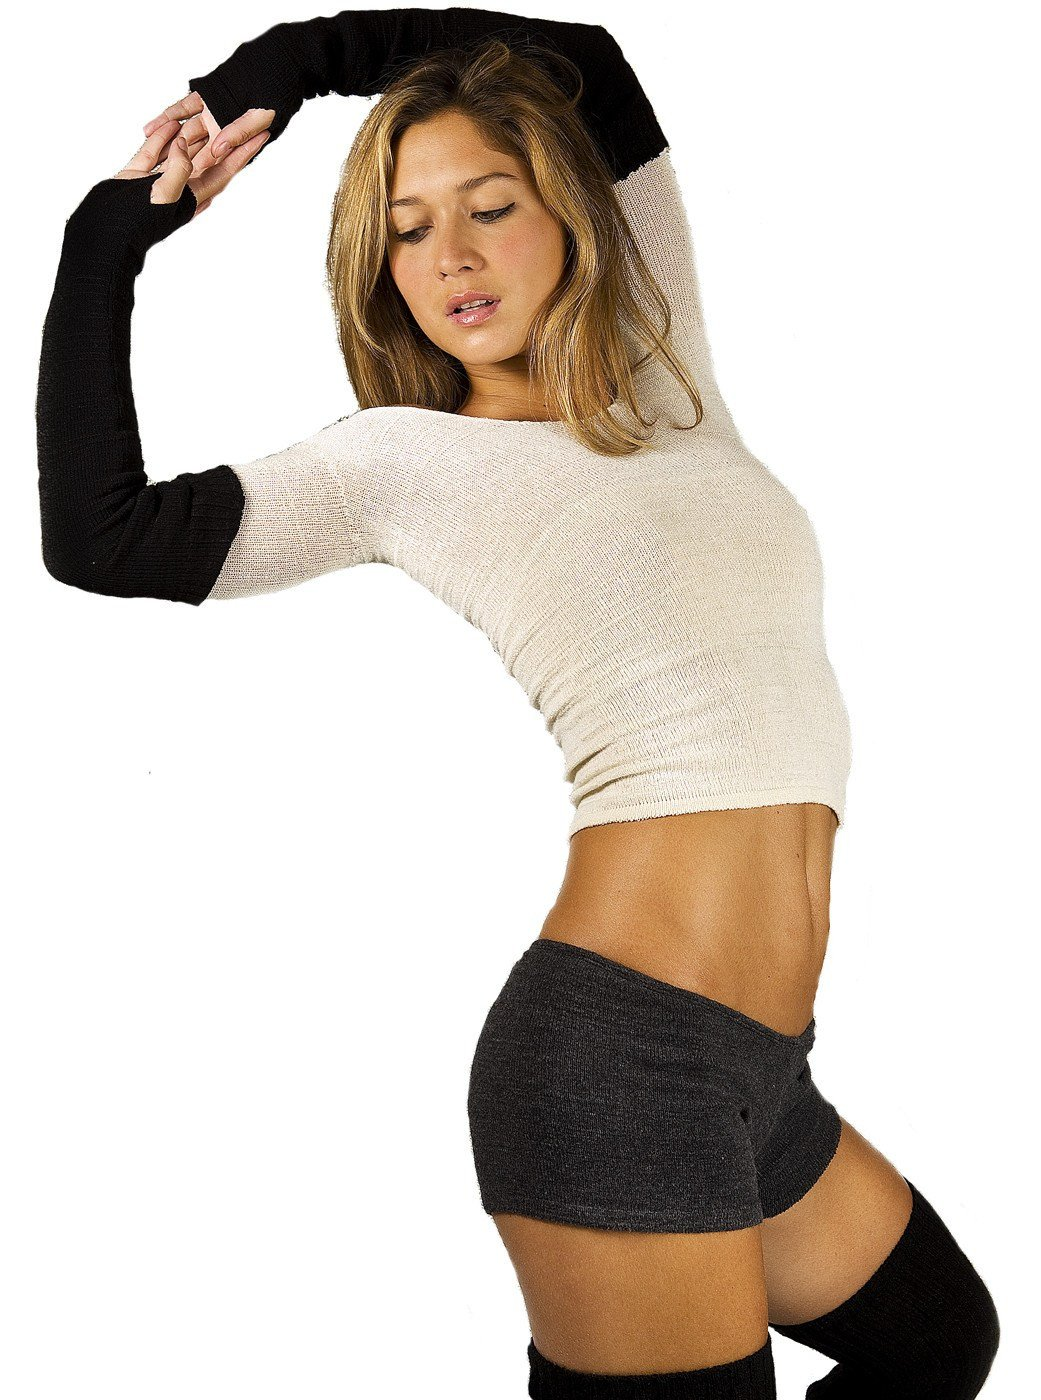 Yoga Shorts / Low Rise Stretch Knit @KDdanceNewYork #MadeInUSA - 3